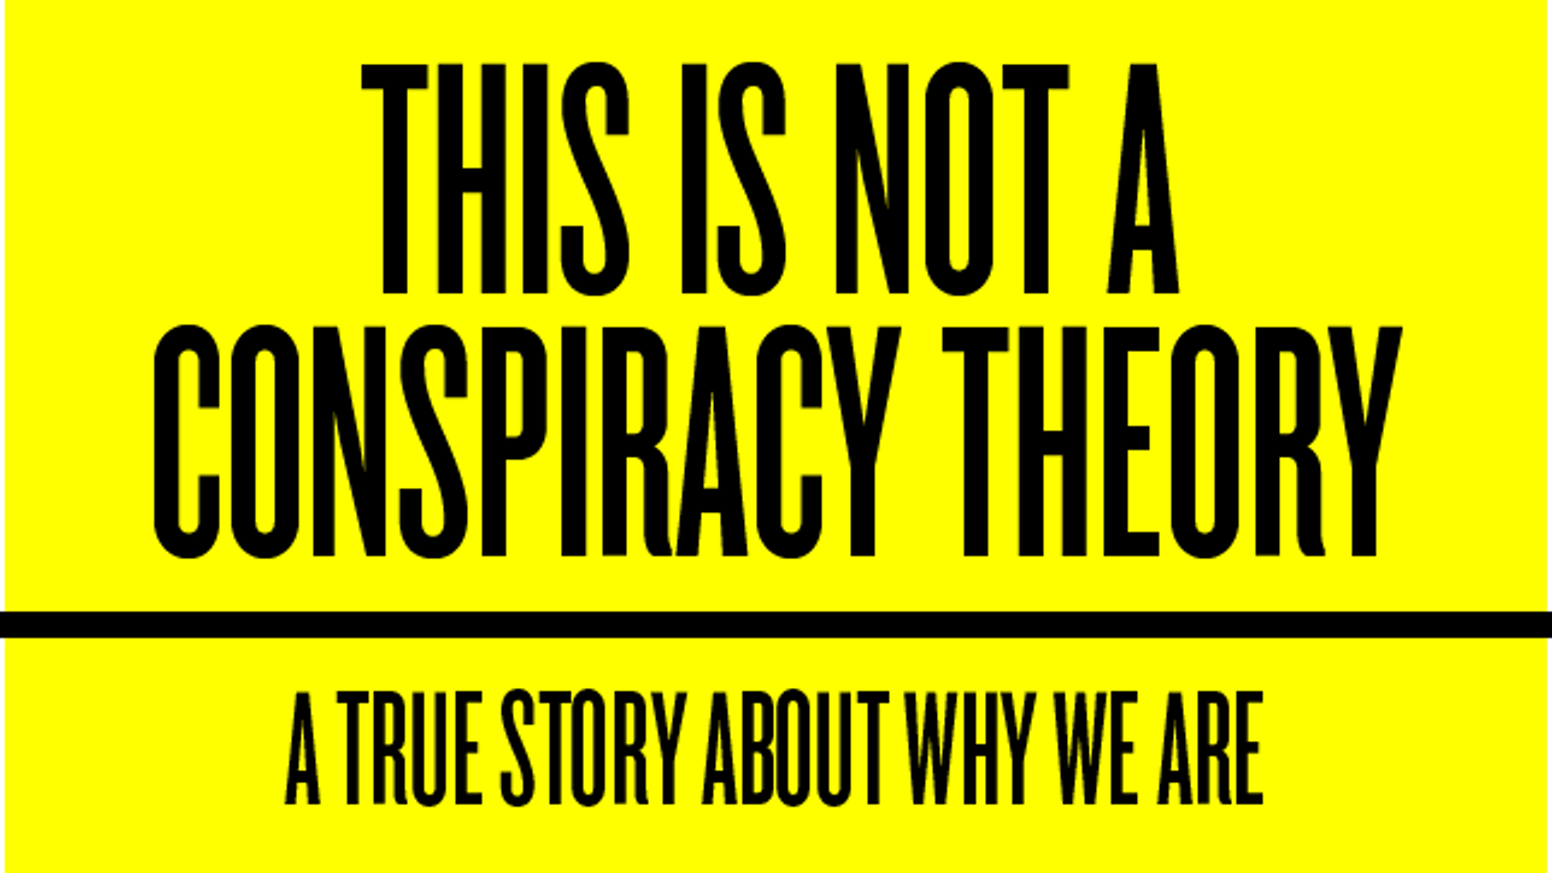 A True Story About Why We Are. From the creator of Everything is a Remix.